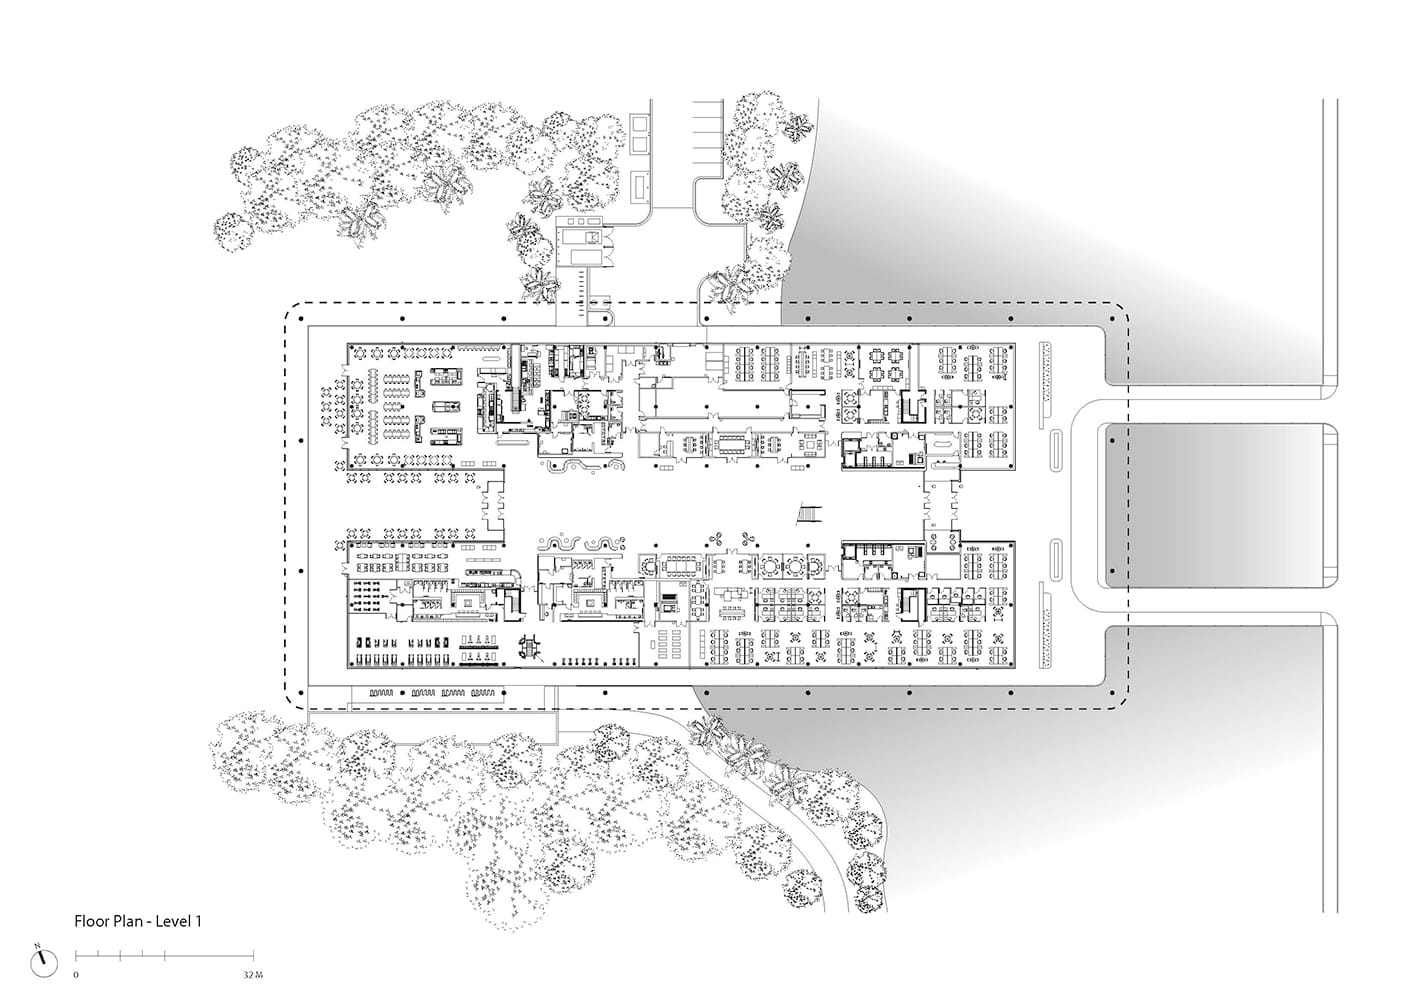 First floor plan of PGA TOUR new headquarters by Foster + Partners